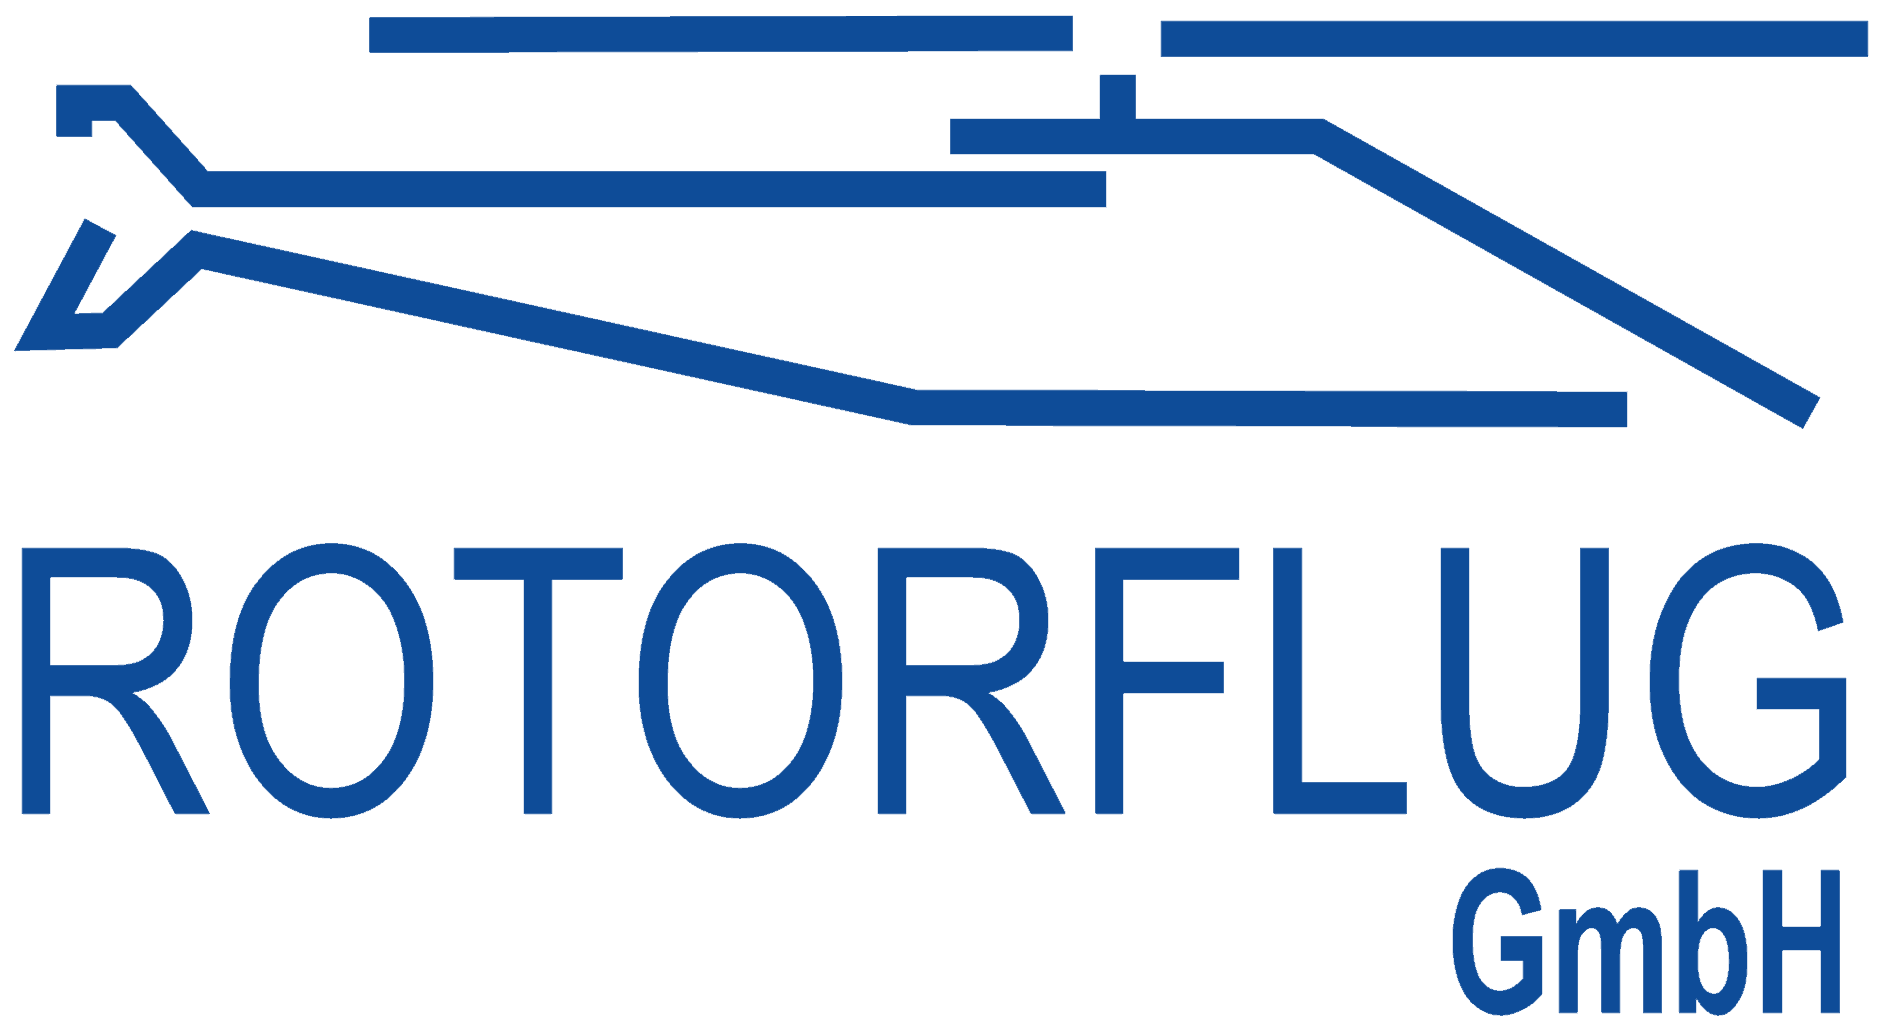 Logo Rotorflug Airservices :: Logo of Rotorflug GmbH. Line outline of a helicopter and the word Rotorflug.